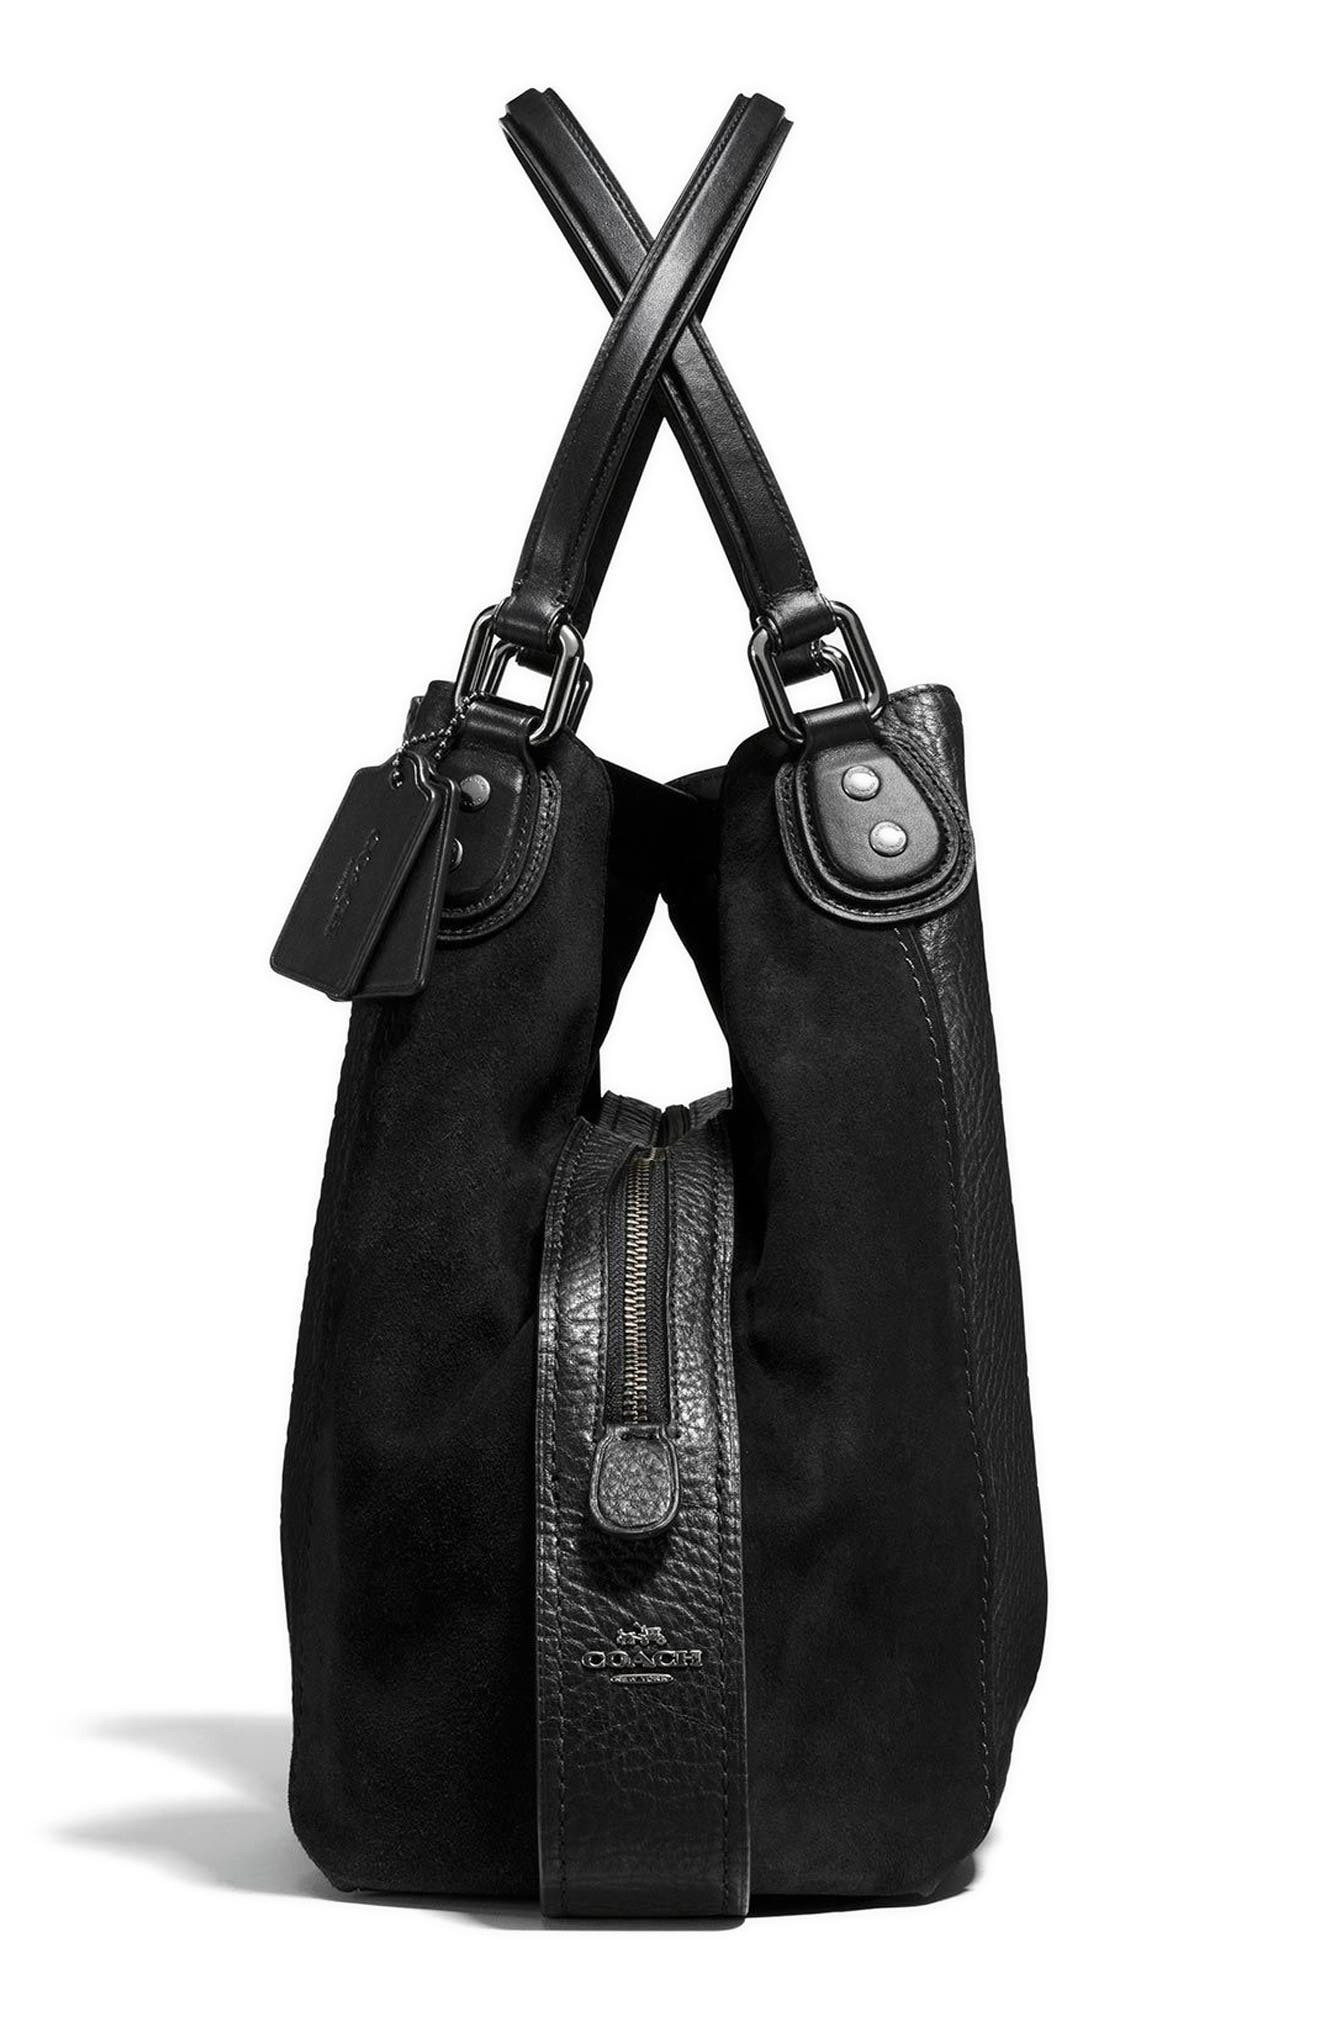 COACH, Edie 42 Leather & Suede Shoulder Bag, Alternate thumbnail 5, color, BLACK